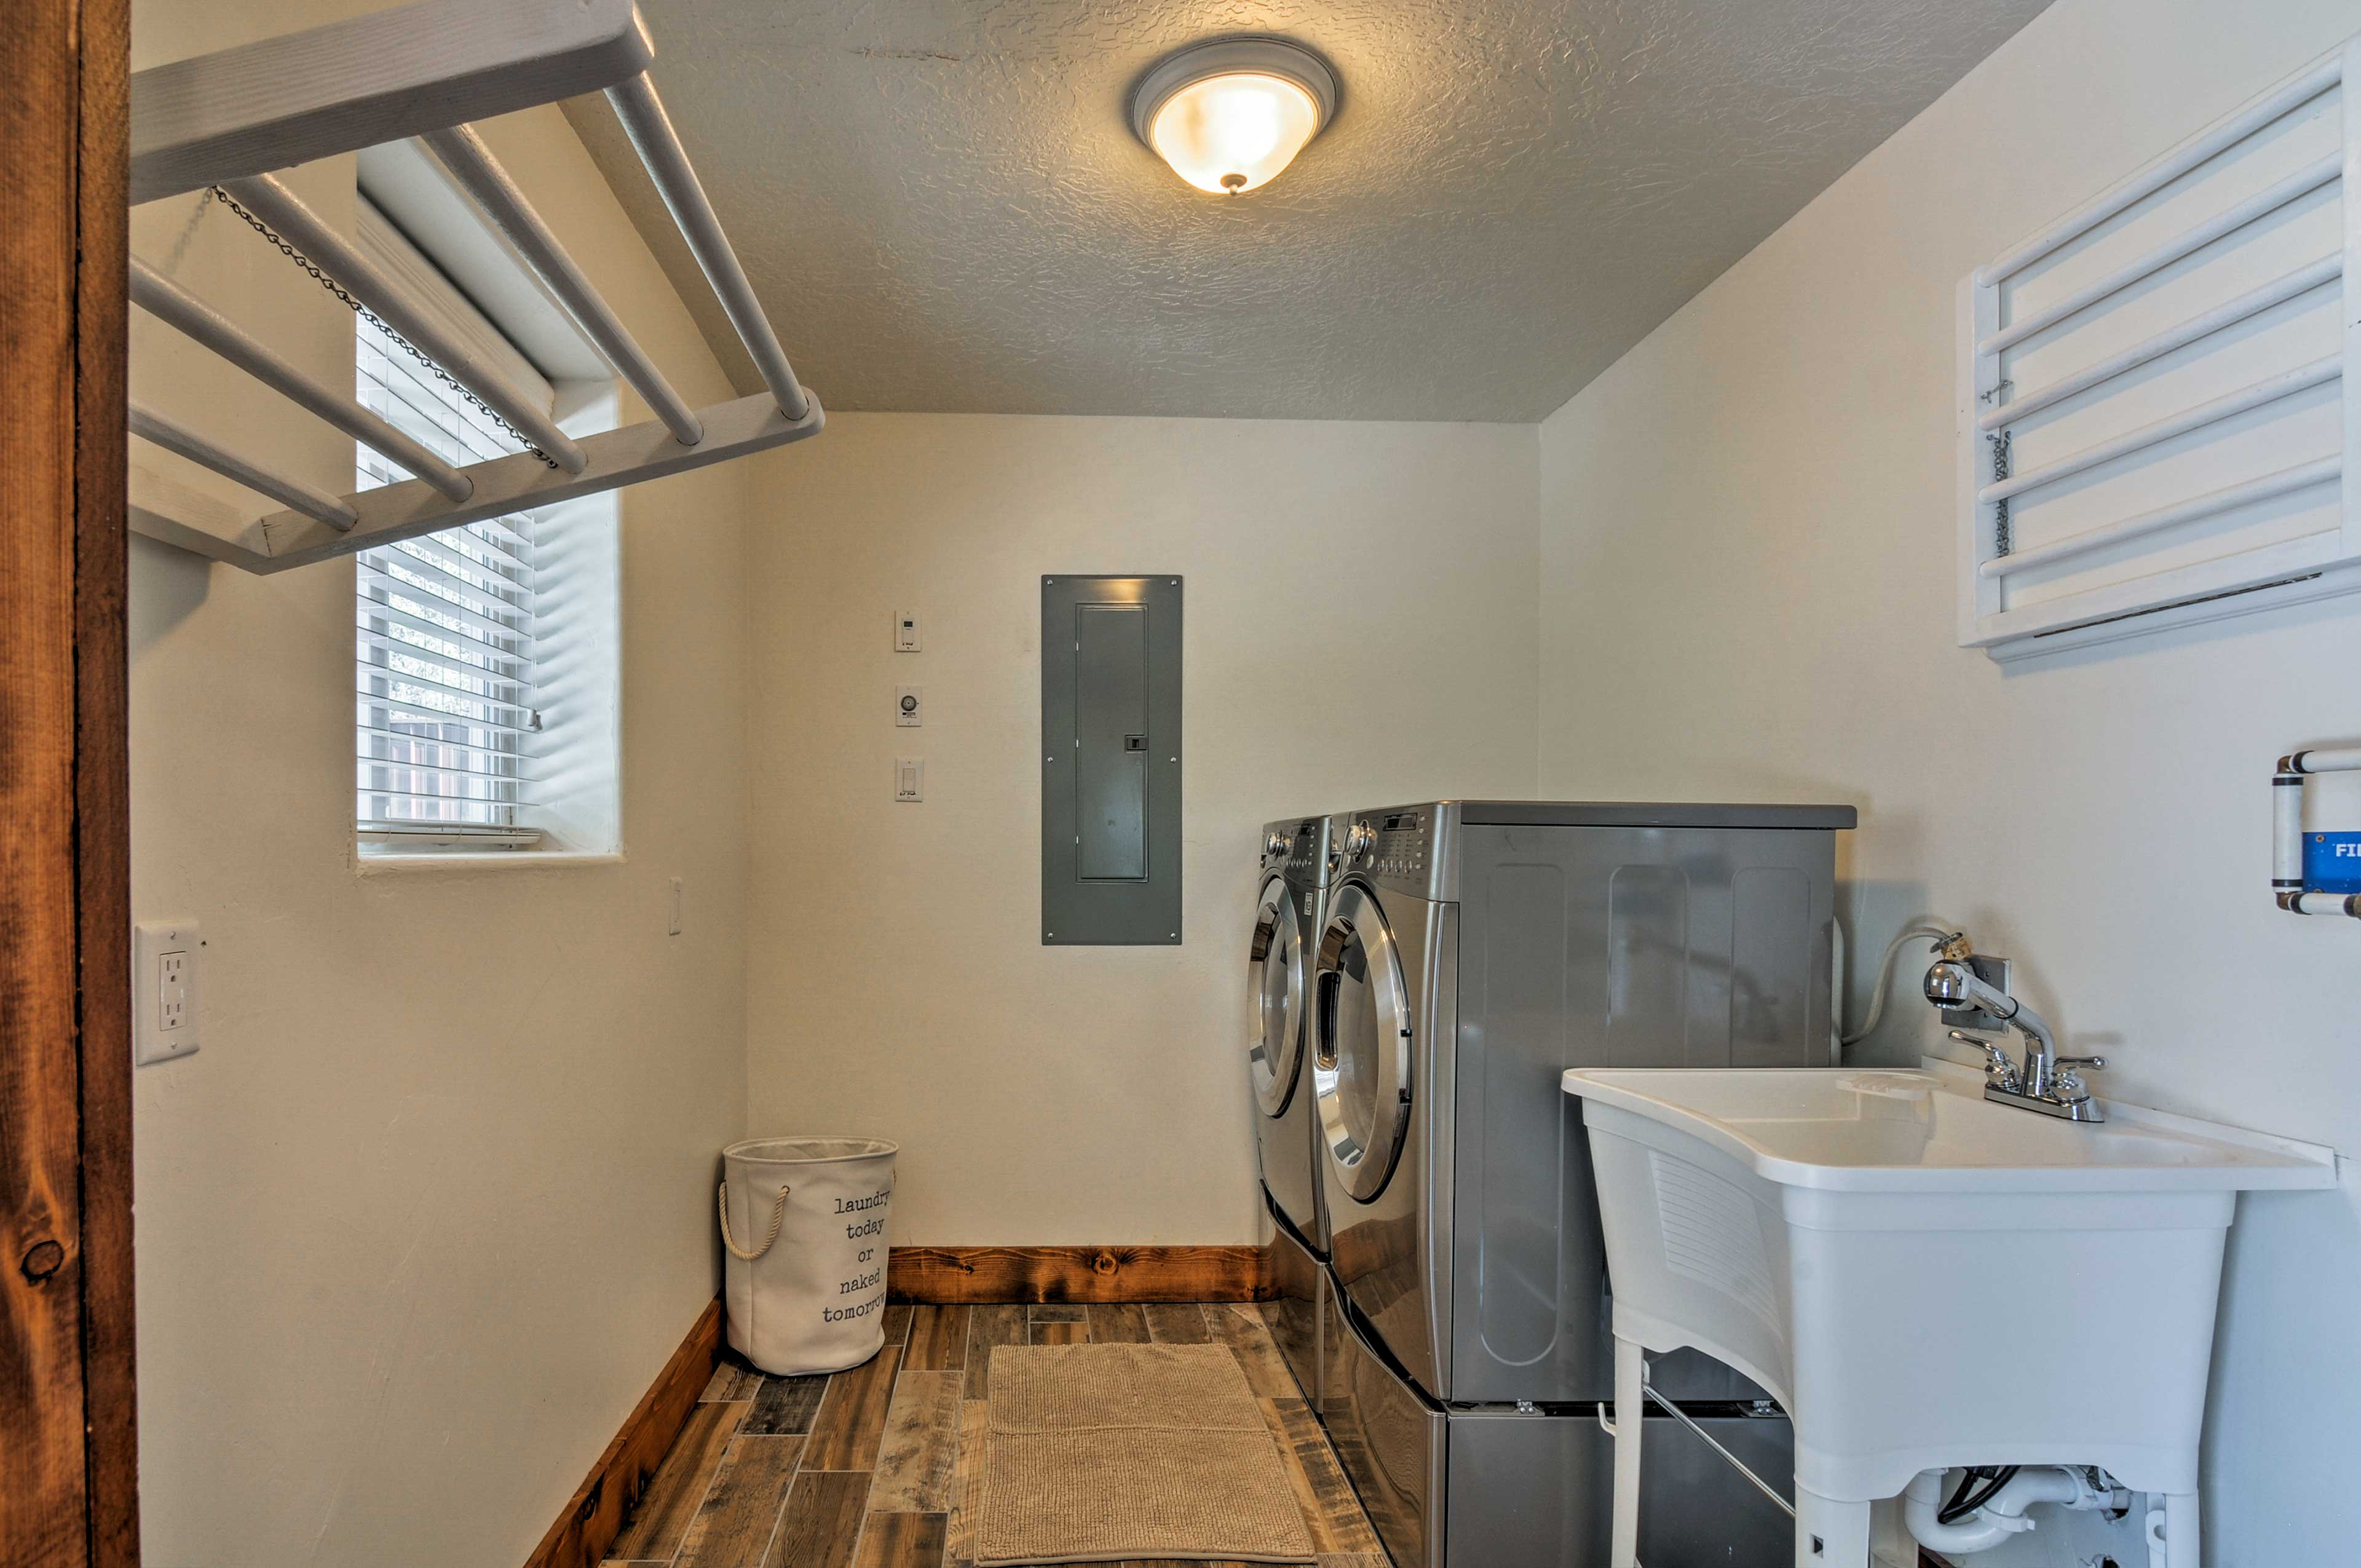 The laundry room is a welcome amenity.